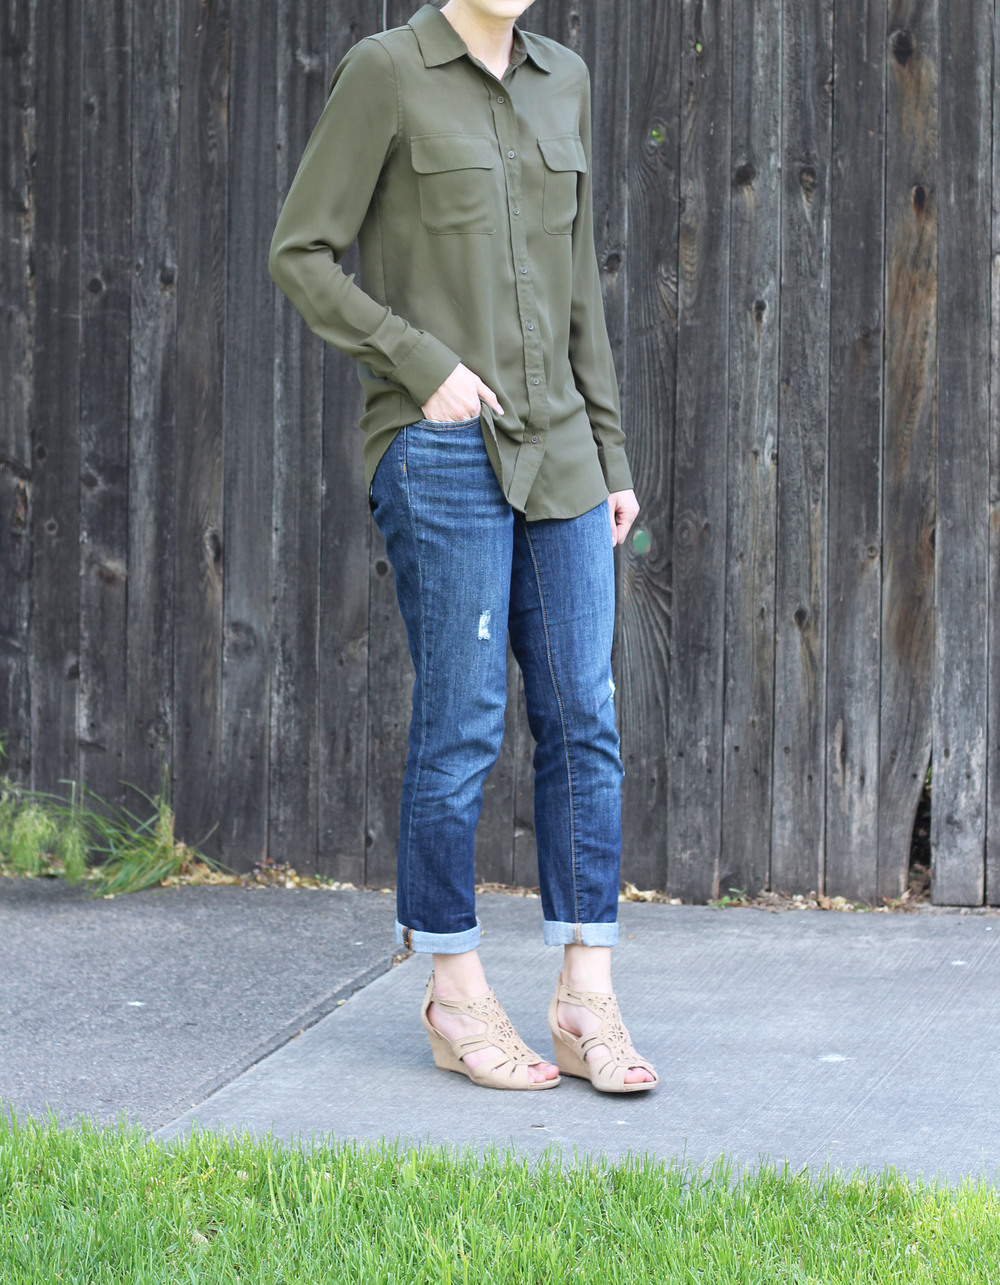 Spring outfit: Olive green shirt + boyfriend jeans + beige wedged sandals — Cotton Cashmere Cat Hair